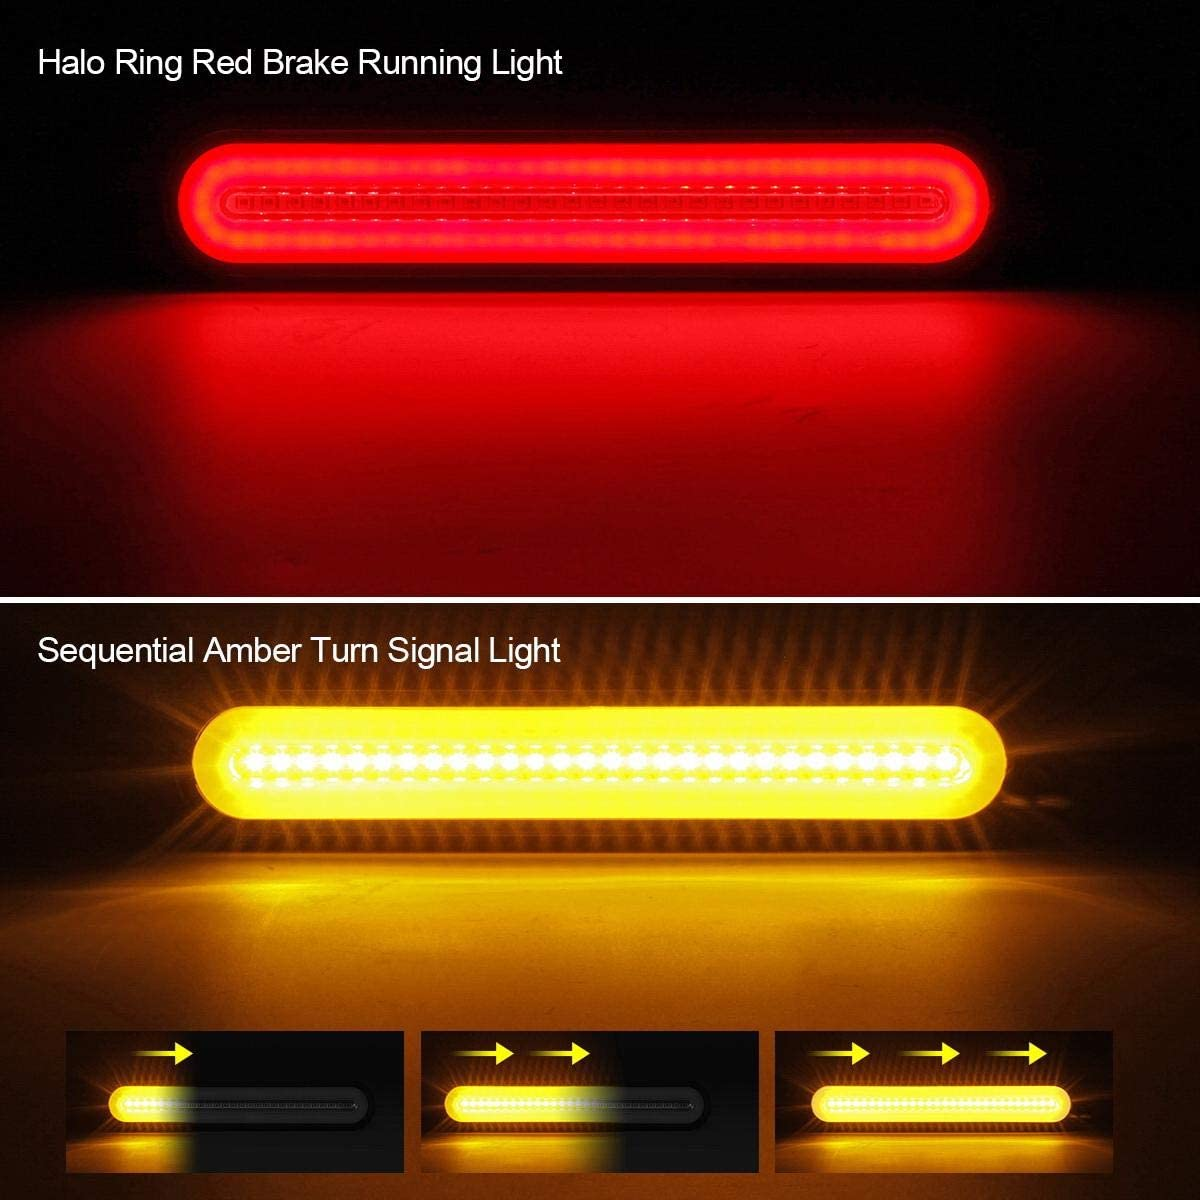 100LED Red//Amber 2Pack Sequential Amber Turn Signal Tail Light for RV Truck Boat RV Trailer Pickup SUV Brake FXC Trailer Tail Light Bar 9inch 3 in 1 Running